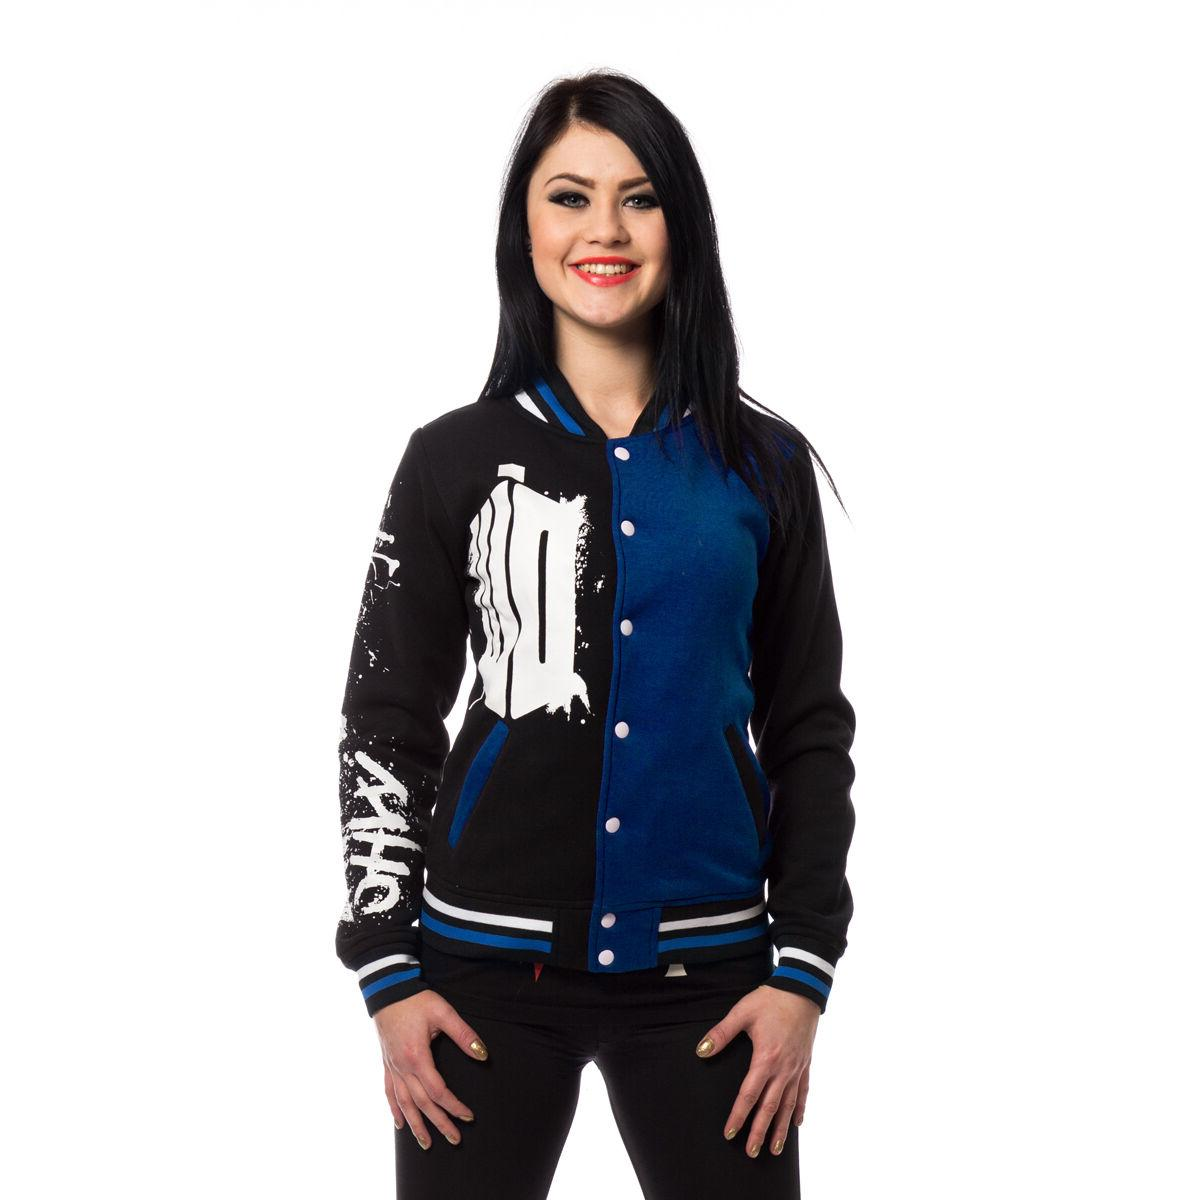 Heartless - DOCTOR WHO STREET - Womens Varsity Jacket - FREE